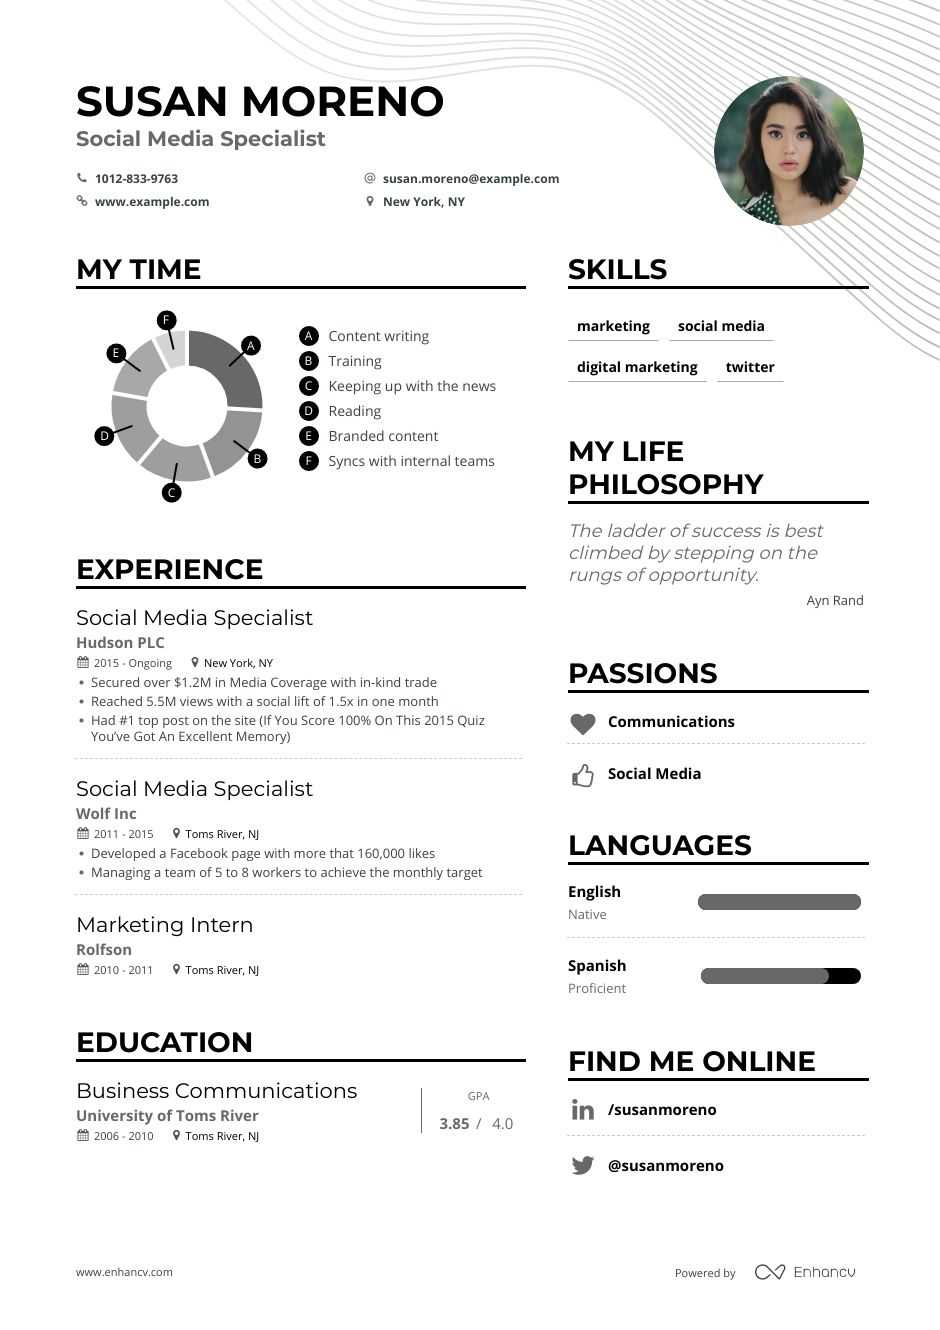 social media specialist resume example for enhancv manager objective lms administrator Resume Social Media Manager Resume Objective